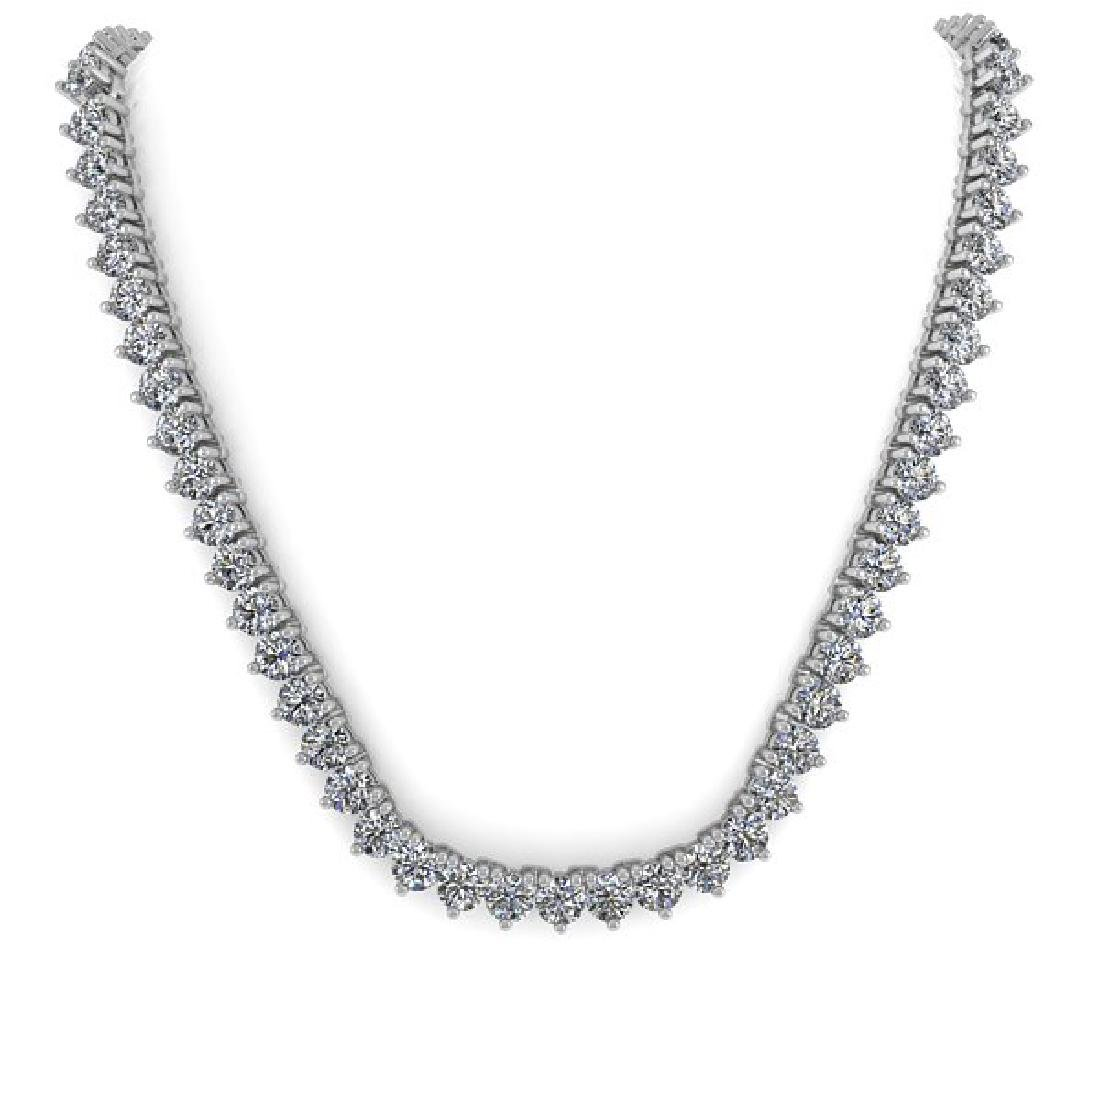 65 CTW Solitaire Certified SI Diamond Necklace 14K - 3